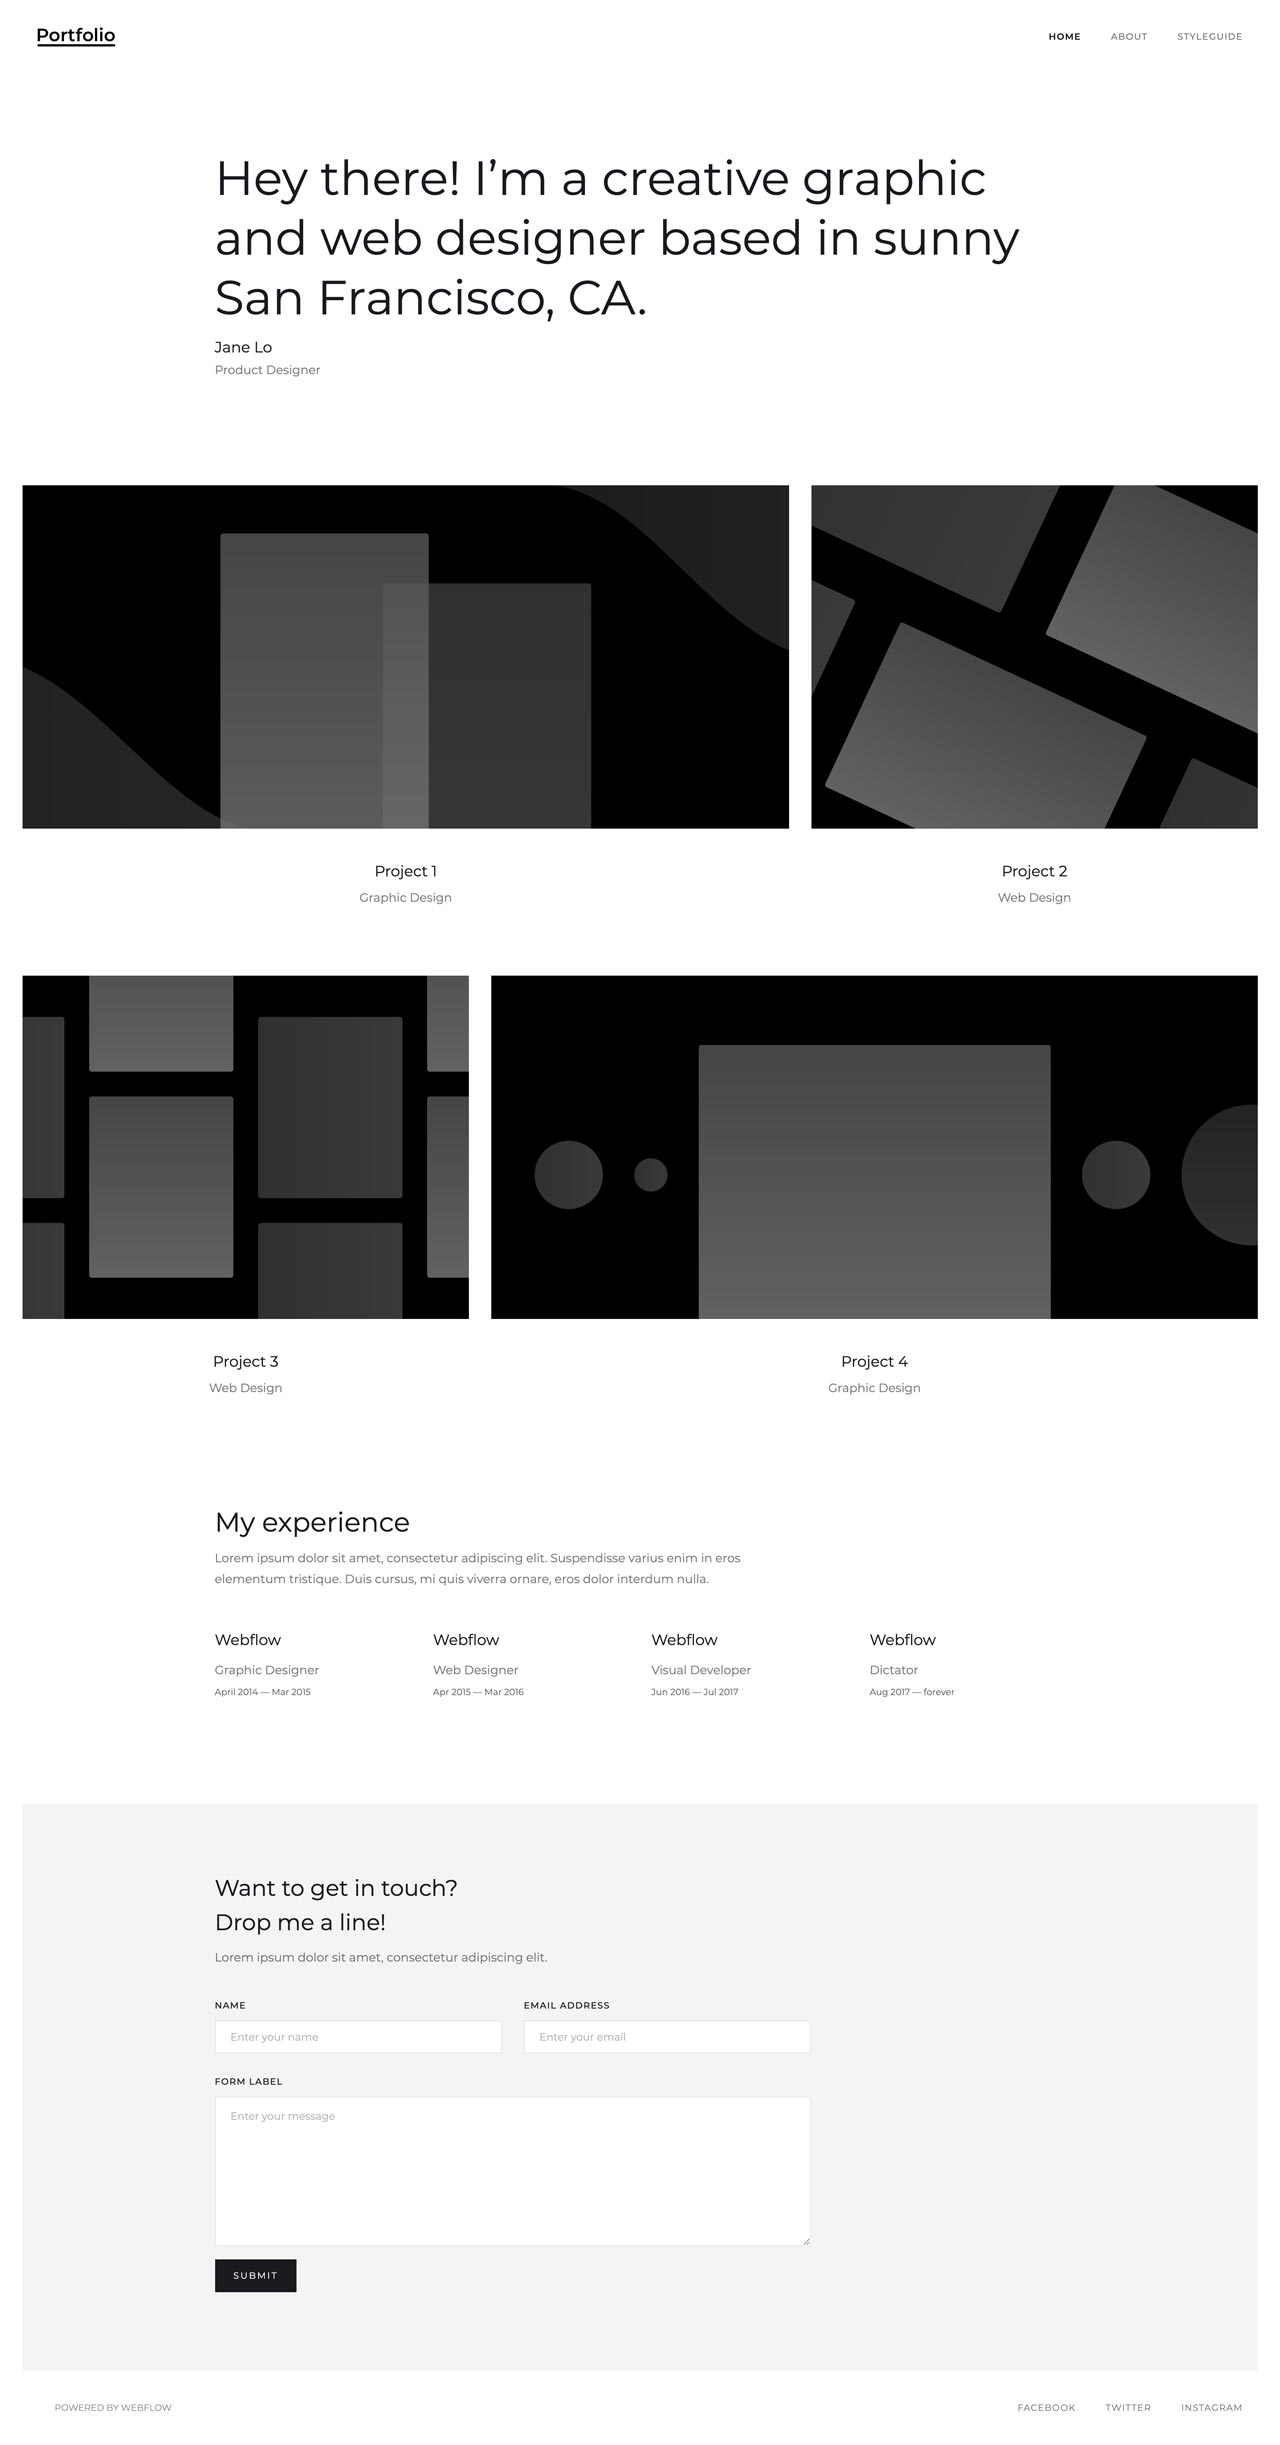 A static HTML portfolio page. All information is hard-coded on the page.